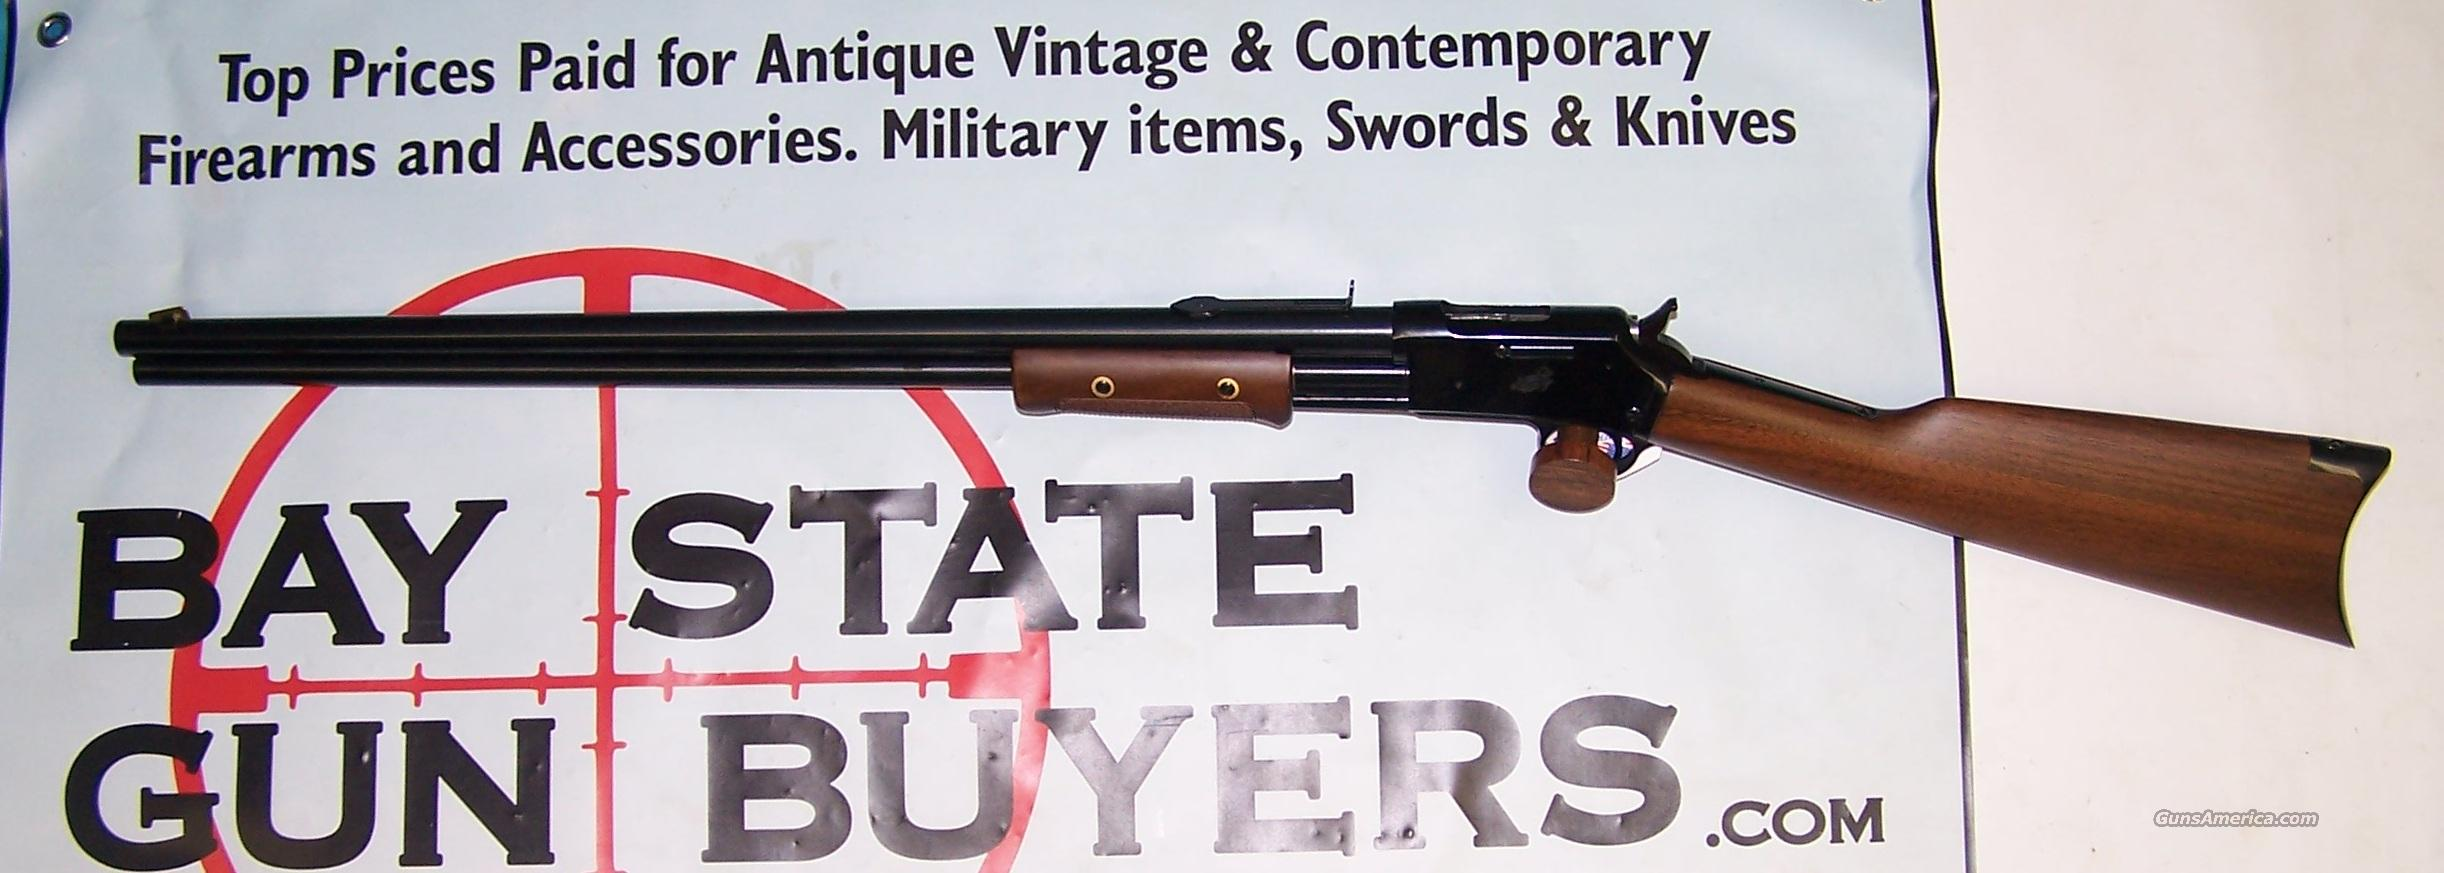 American Western Arms LIGHTNING Pump Action Rifle 44-40 cal. LIKE NEW   Guns > Rifles > American Western Arms (AWA) Rifles